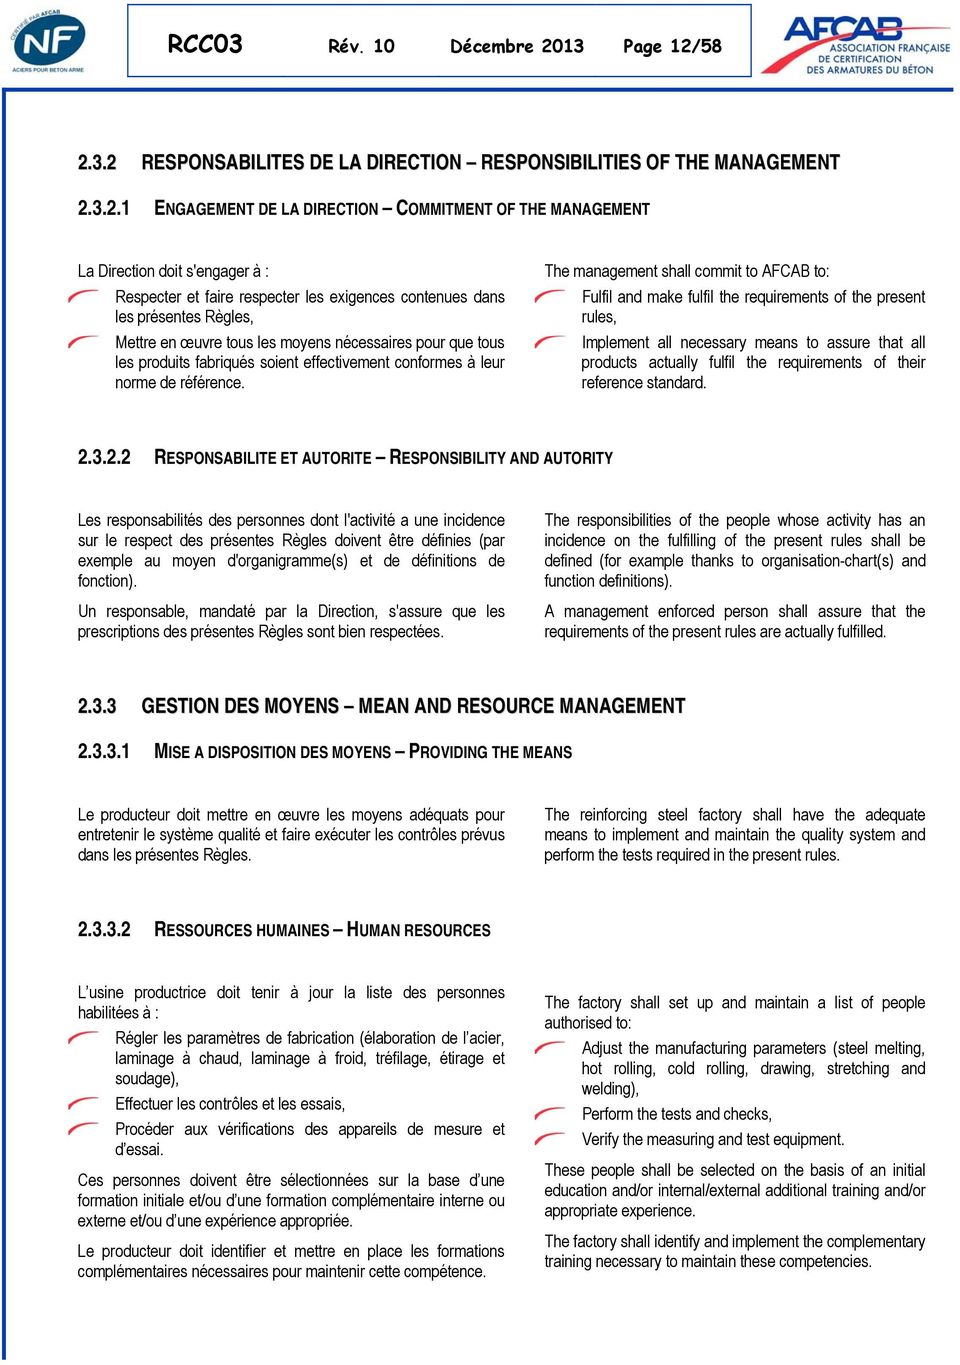 58 2.3.2 RESPONSABILITES DE LA DIRECTION RESPONSIBILITIES OF THE MANAGEMENT 2.3.2.1 ENGAGEMENT DE LA DIRECTION COMMITMENT OF THE MANAGEMENT La Direction doit s'engager à : Respecter et faire